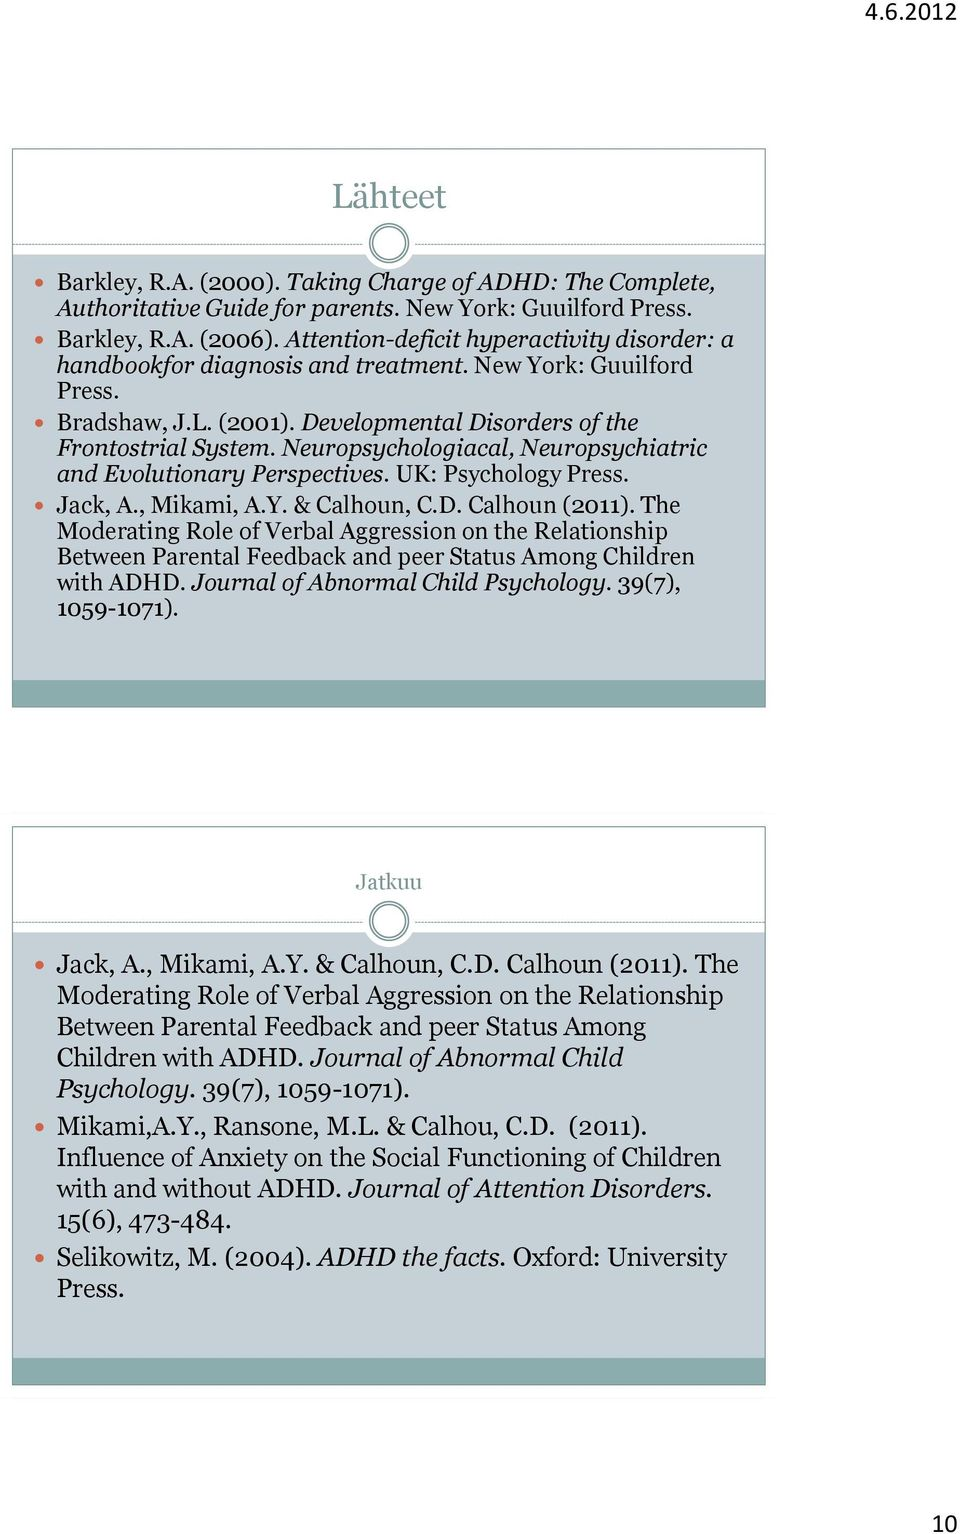 Neuropsychologiacal, Neuropsychiatric and Evolutionary Perspectives. UK: Psychology Press. Jack, A., Mikami, A.Y. & Calhoun, C.D. Calhoun (2011).